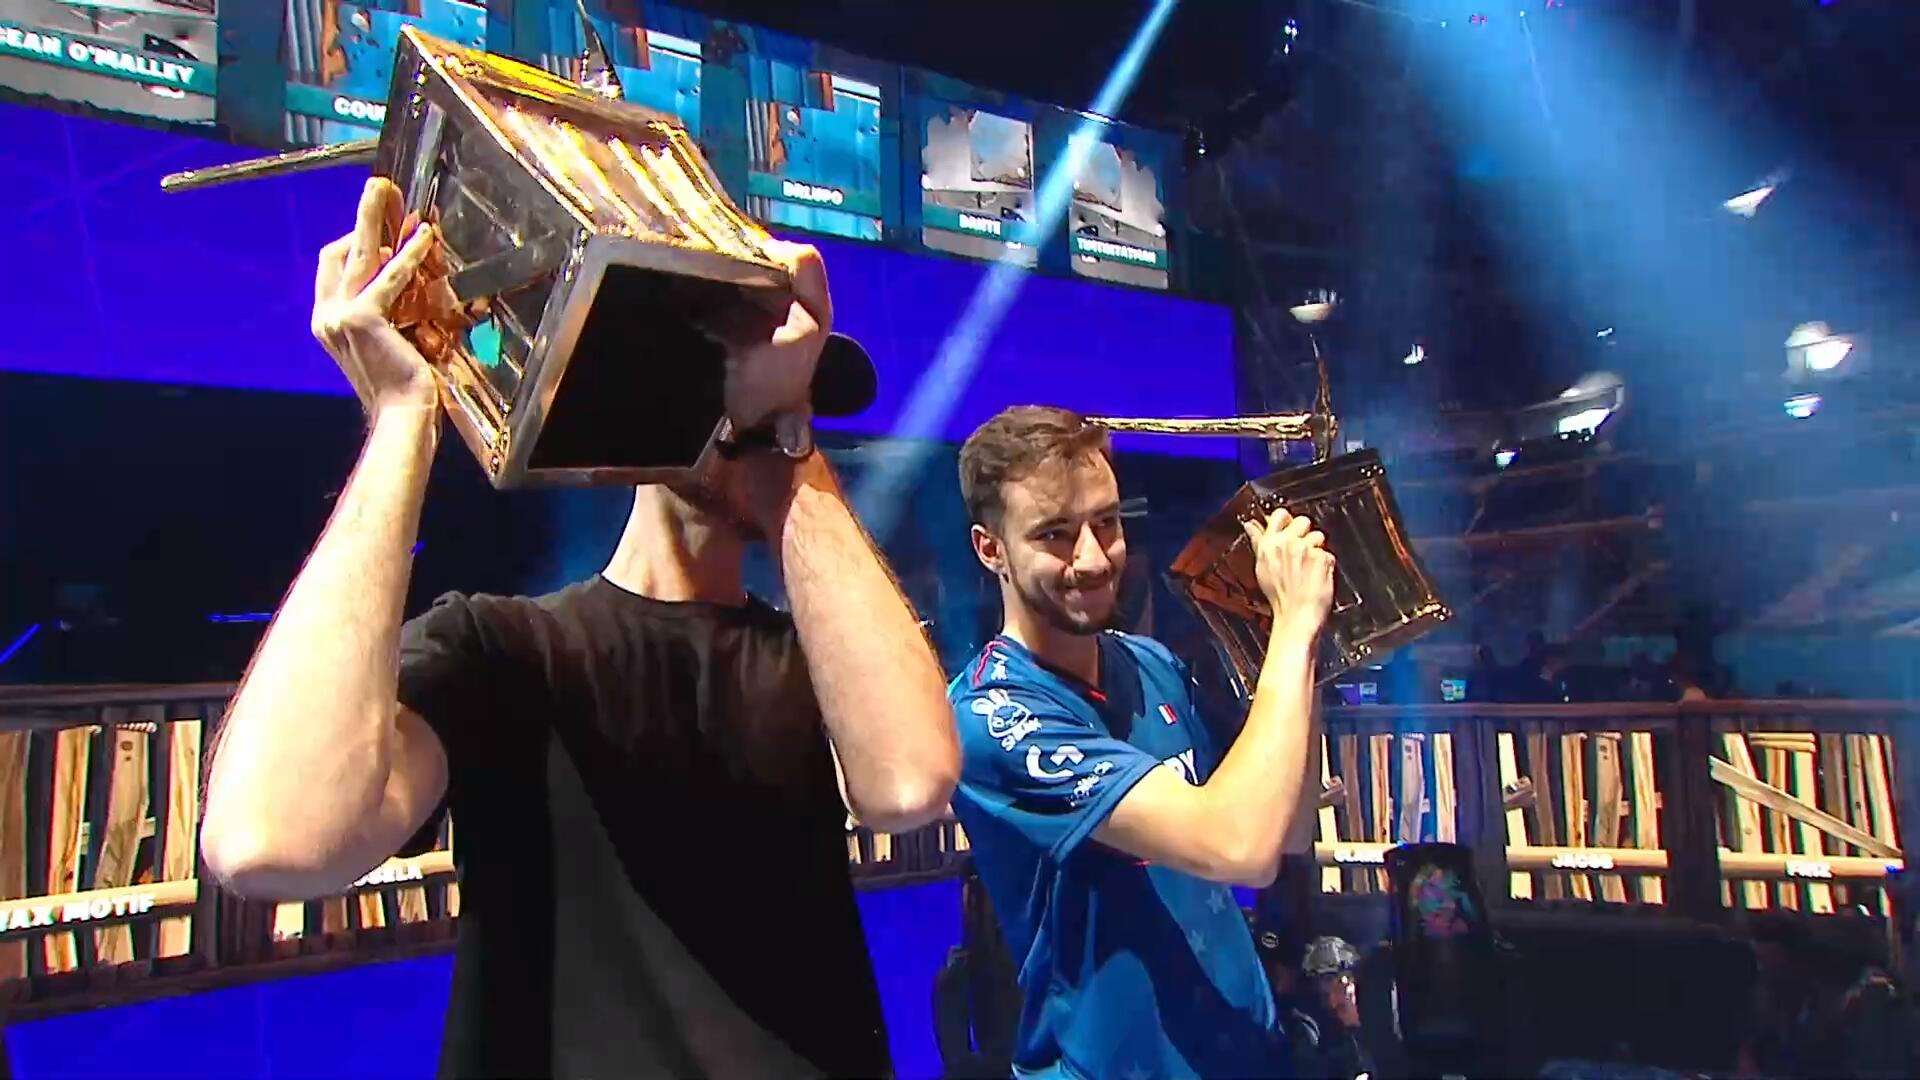 Rl Grime And Airwaks Win The Inaugural Fortnite World Cup